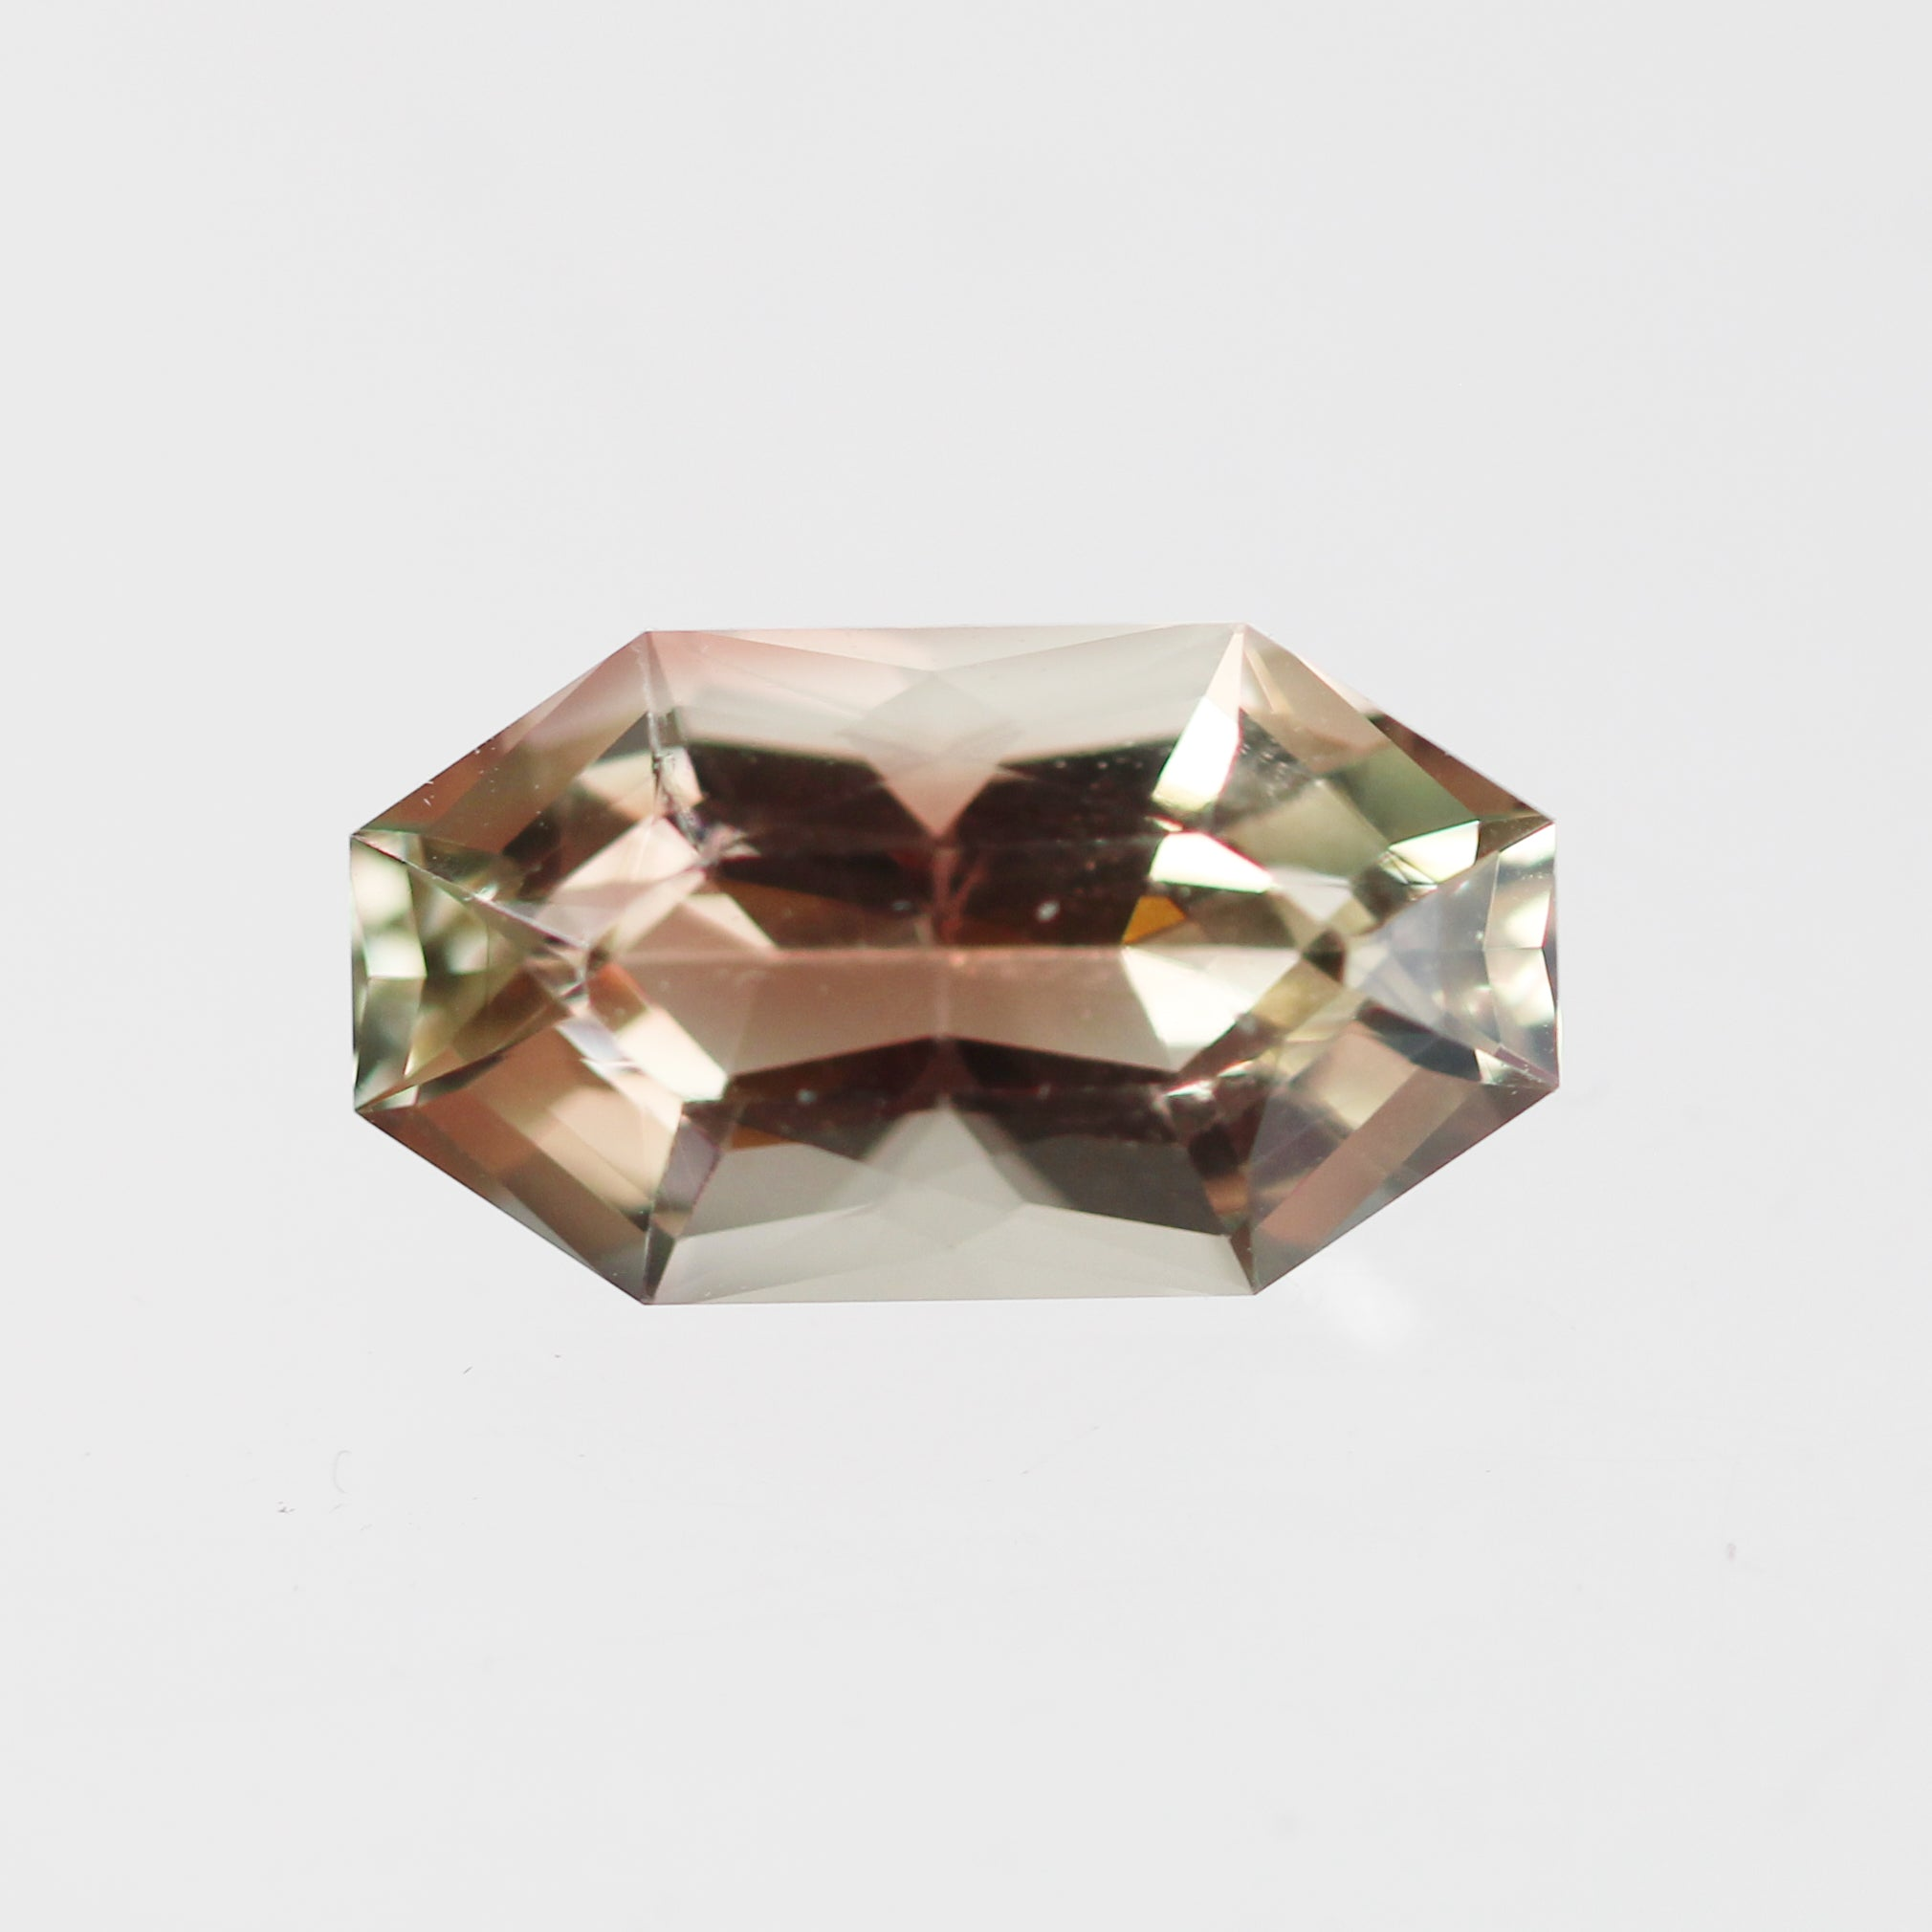 6 Carat Hexagon Sunstone - Inventory Code SUNHB600 - Salt & Pepper Celestial Diamond Engagement Rings and Wedding Bands  by Midwinter Co.